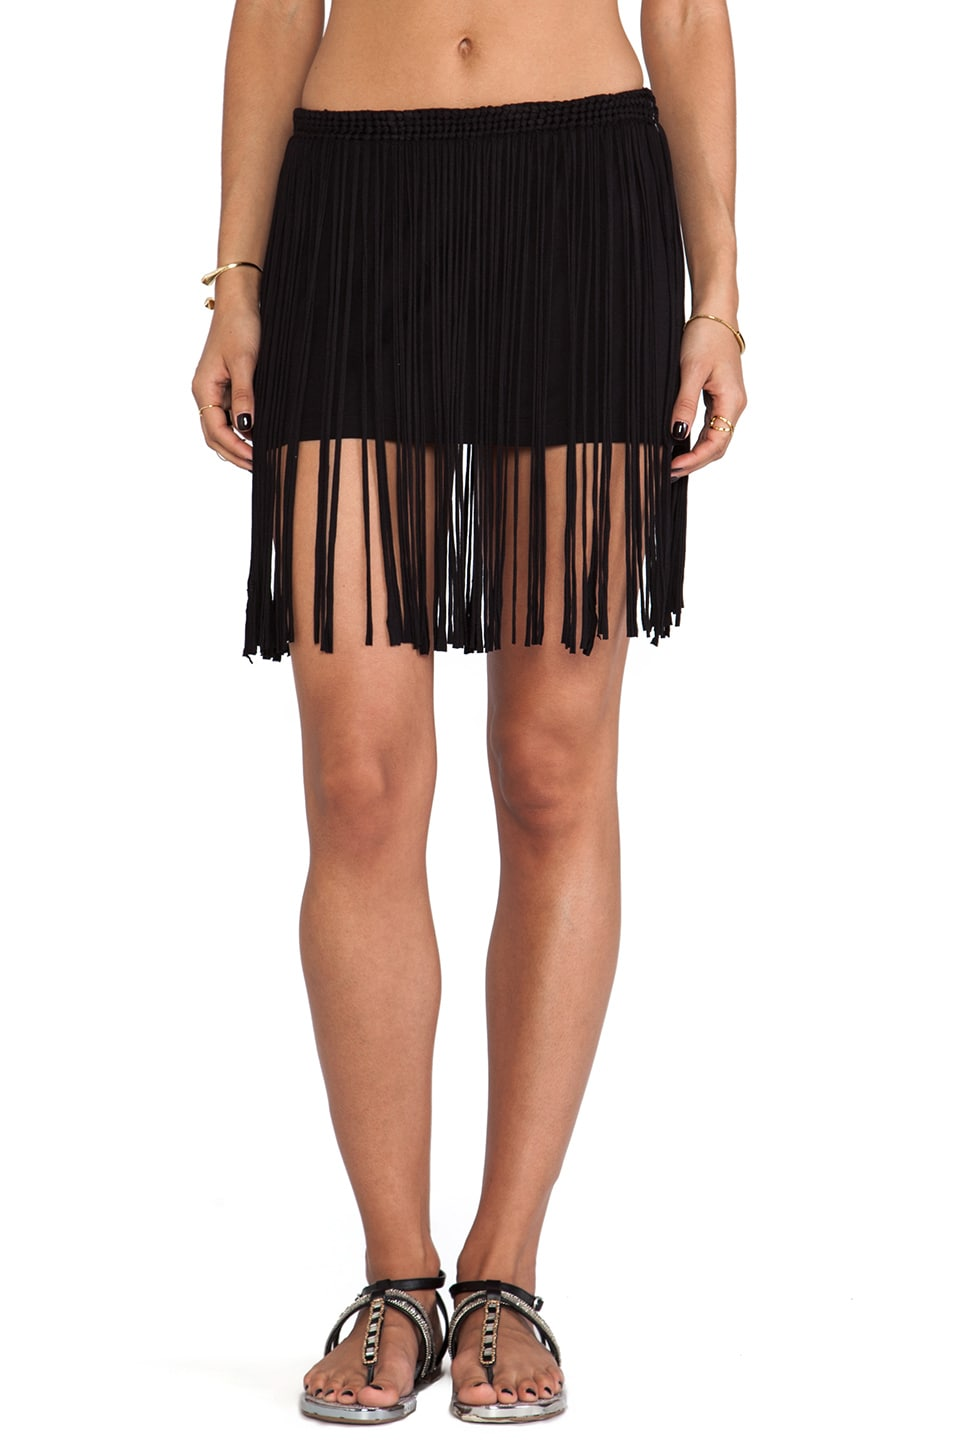 Pia Pauro Lounge Fringe Skirt with mini in Black